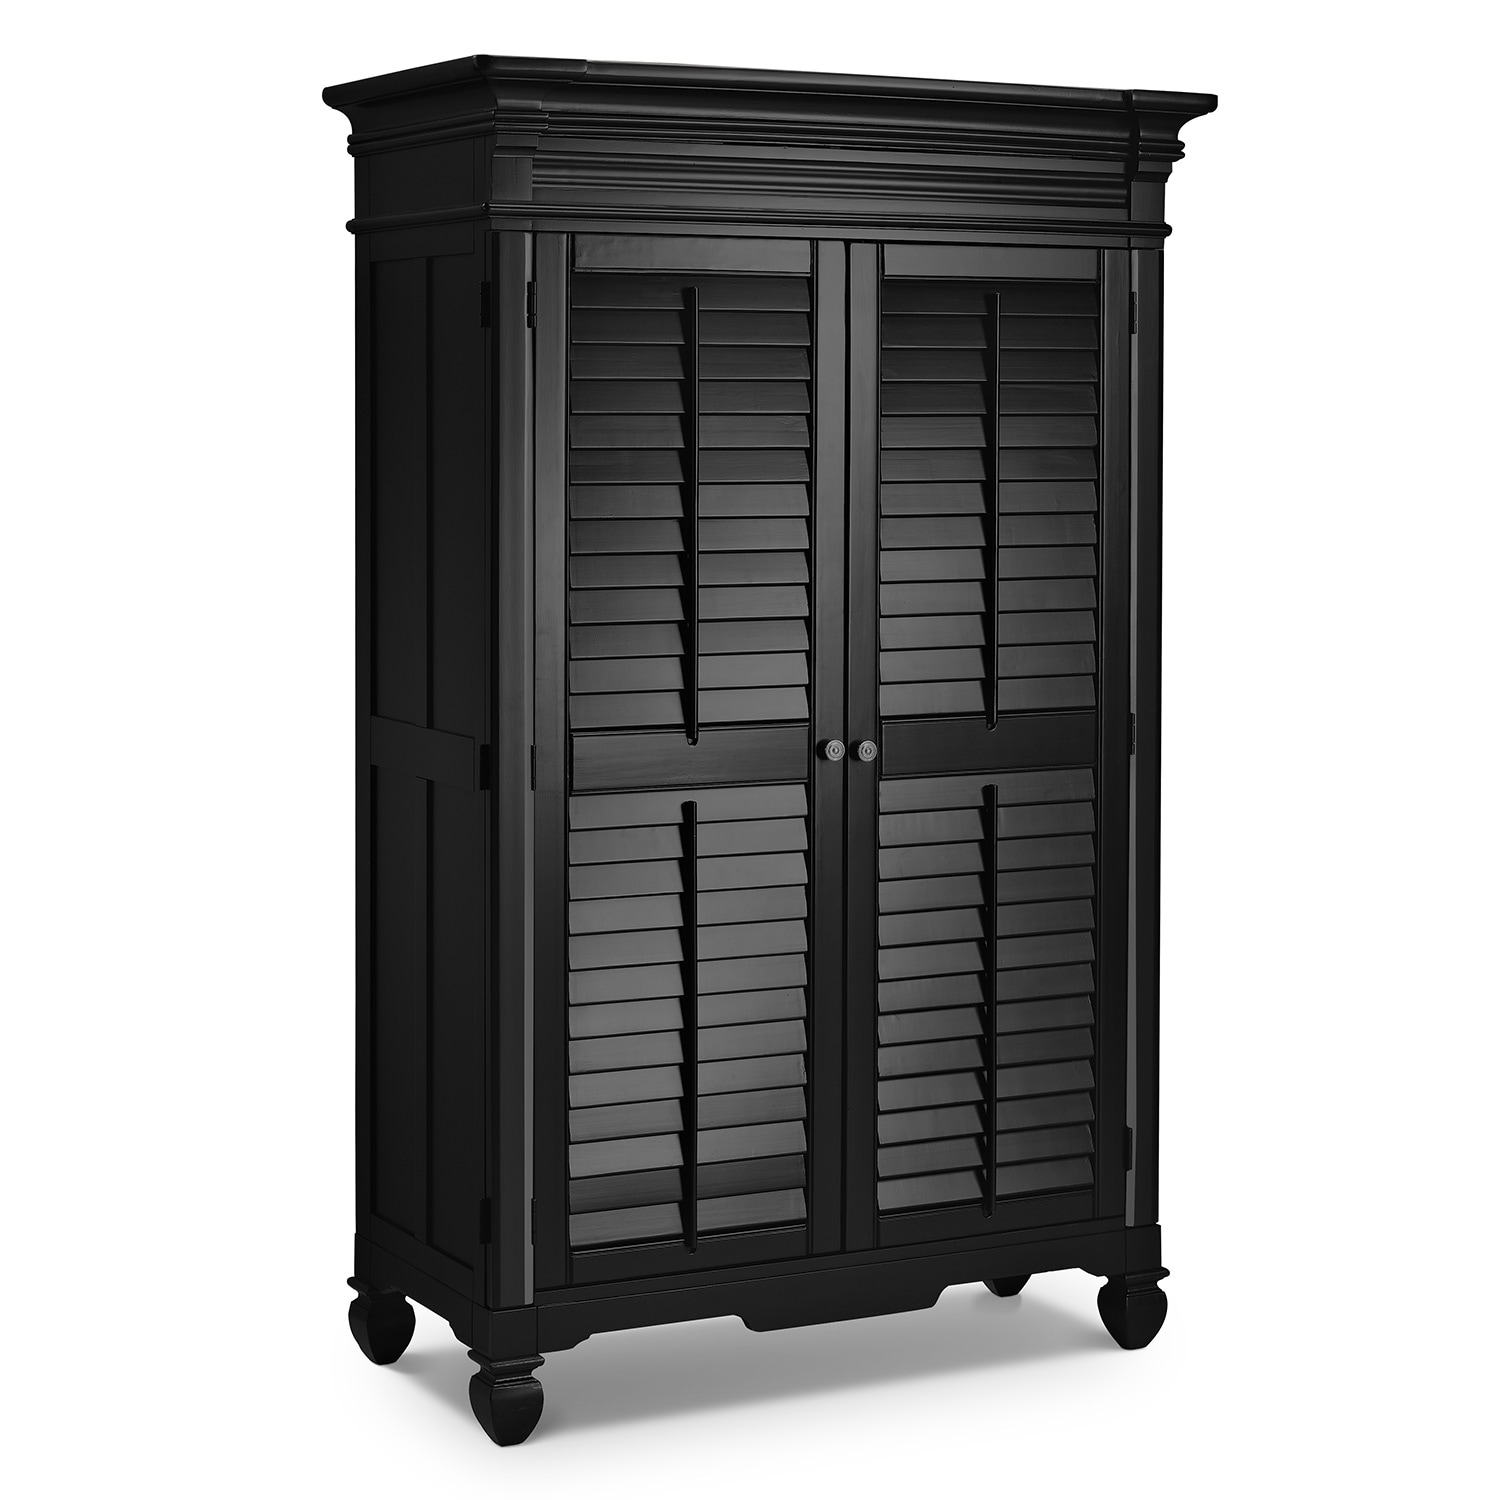 wardrobe black wardrobe armoire. Black Bedroom Furniture Sets. Home Design Ideas